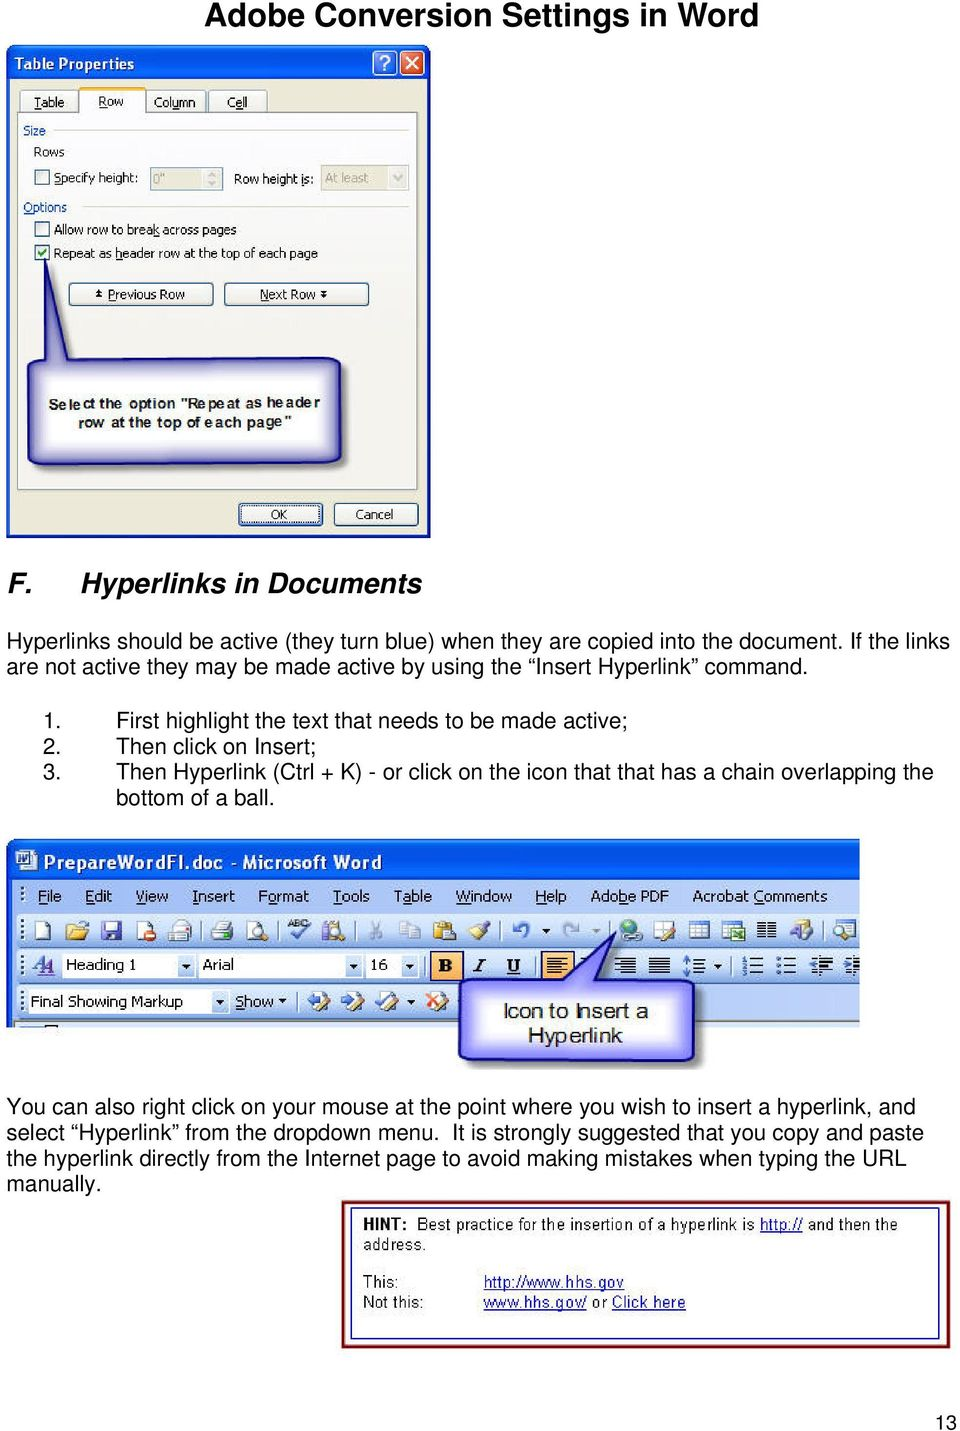 Then Hyperlink (Ctrl + K) - or click on the icon that that has a chain overlapping the bottom of a ball.